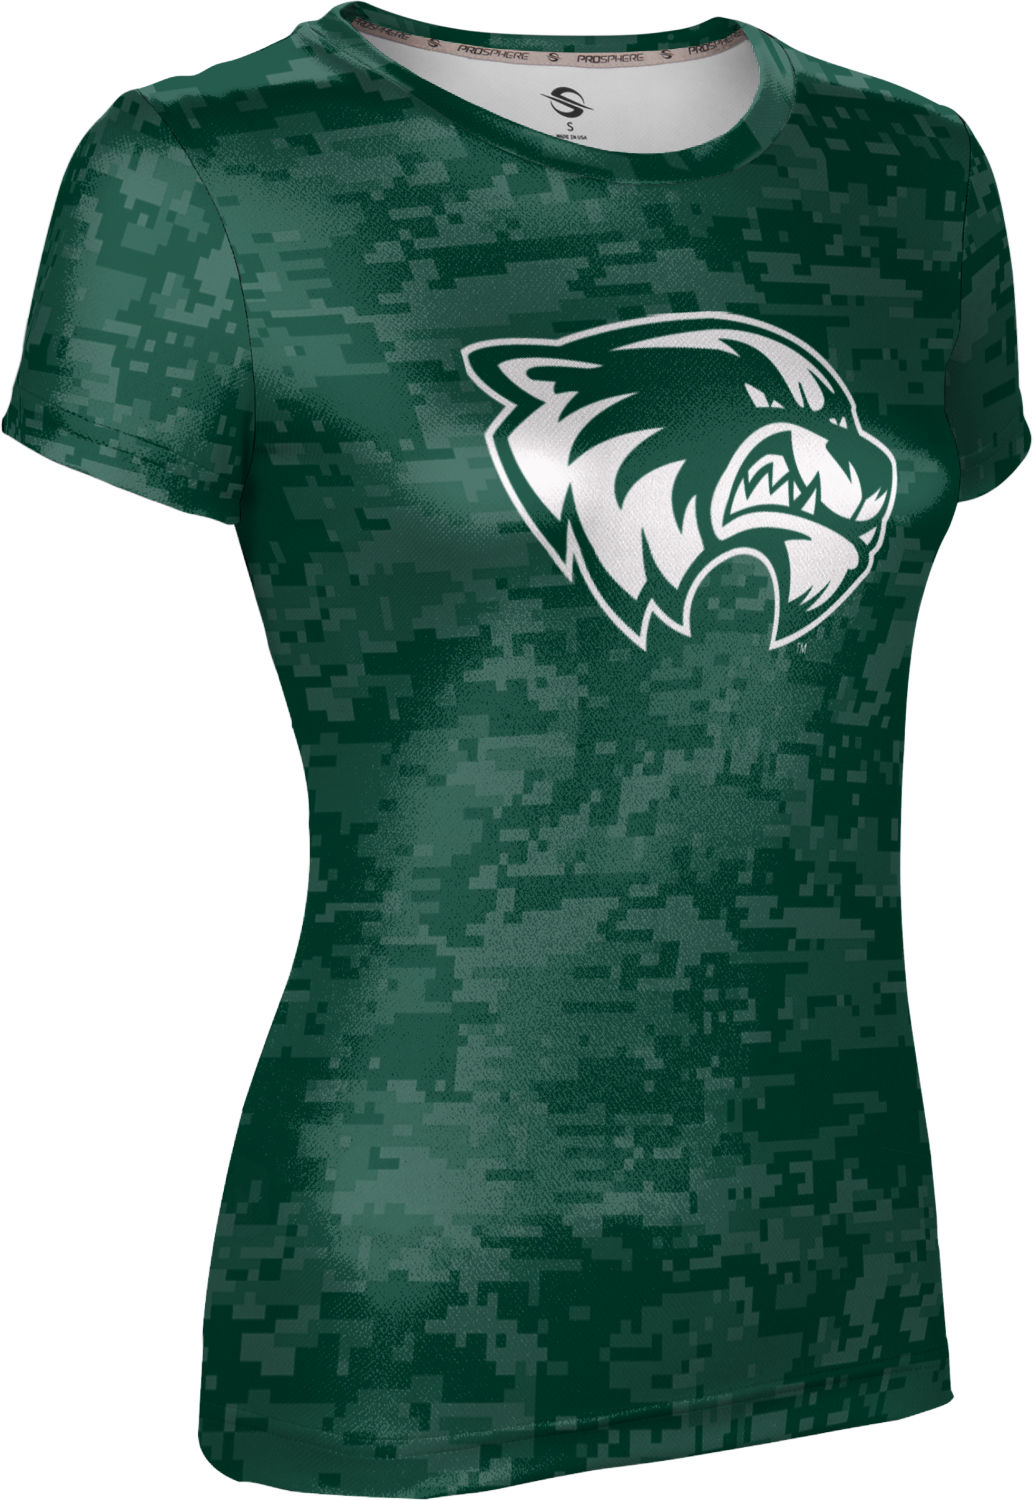 Utah Valley University: Girls' T-shirt - Digi Camo